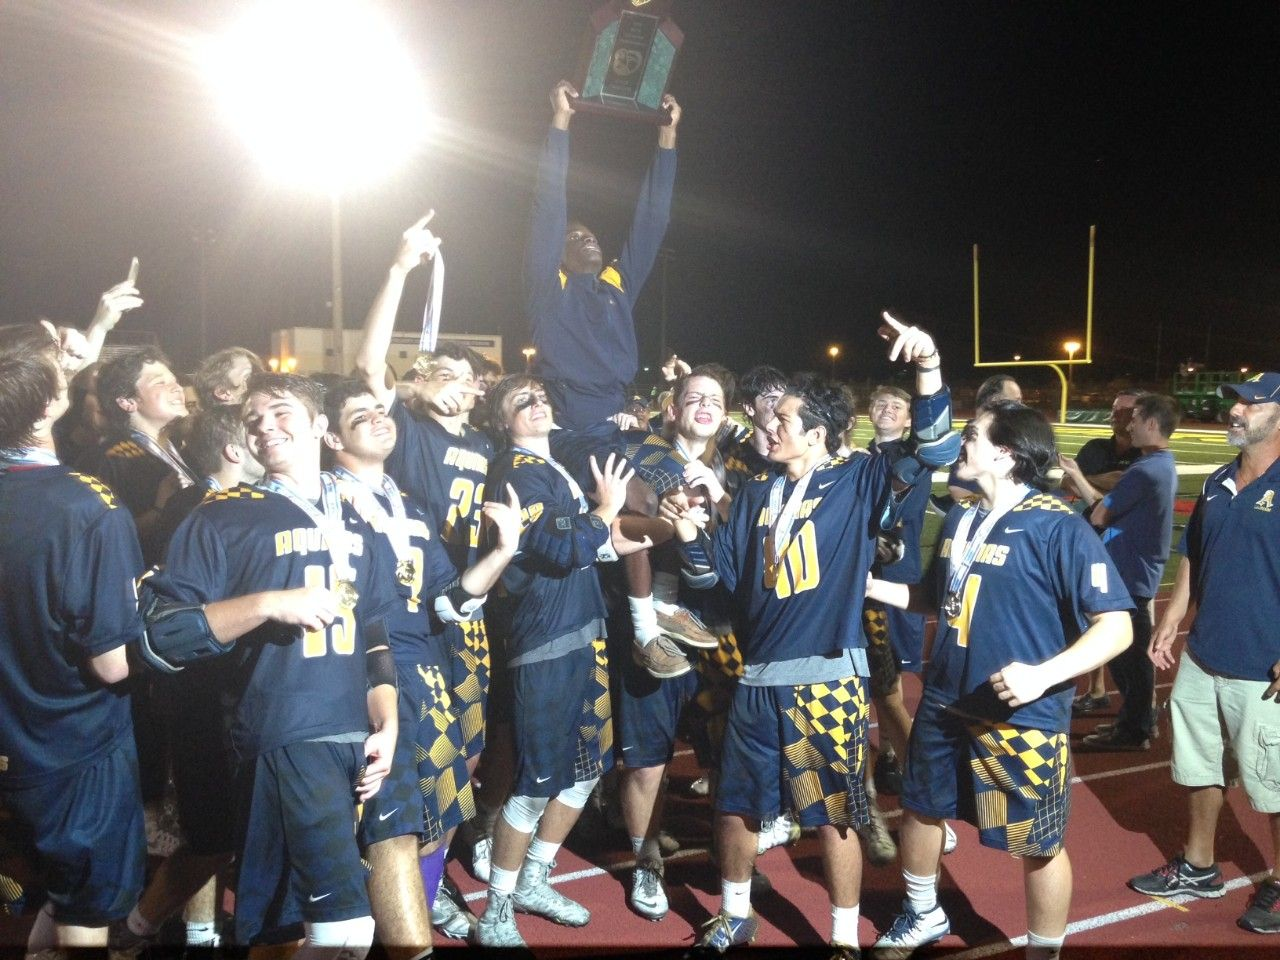 First time winners crowned at fhsaa state lacrosse finals